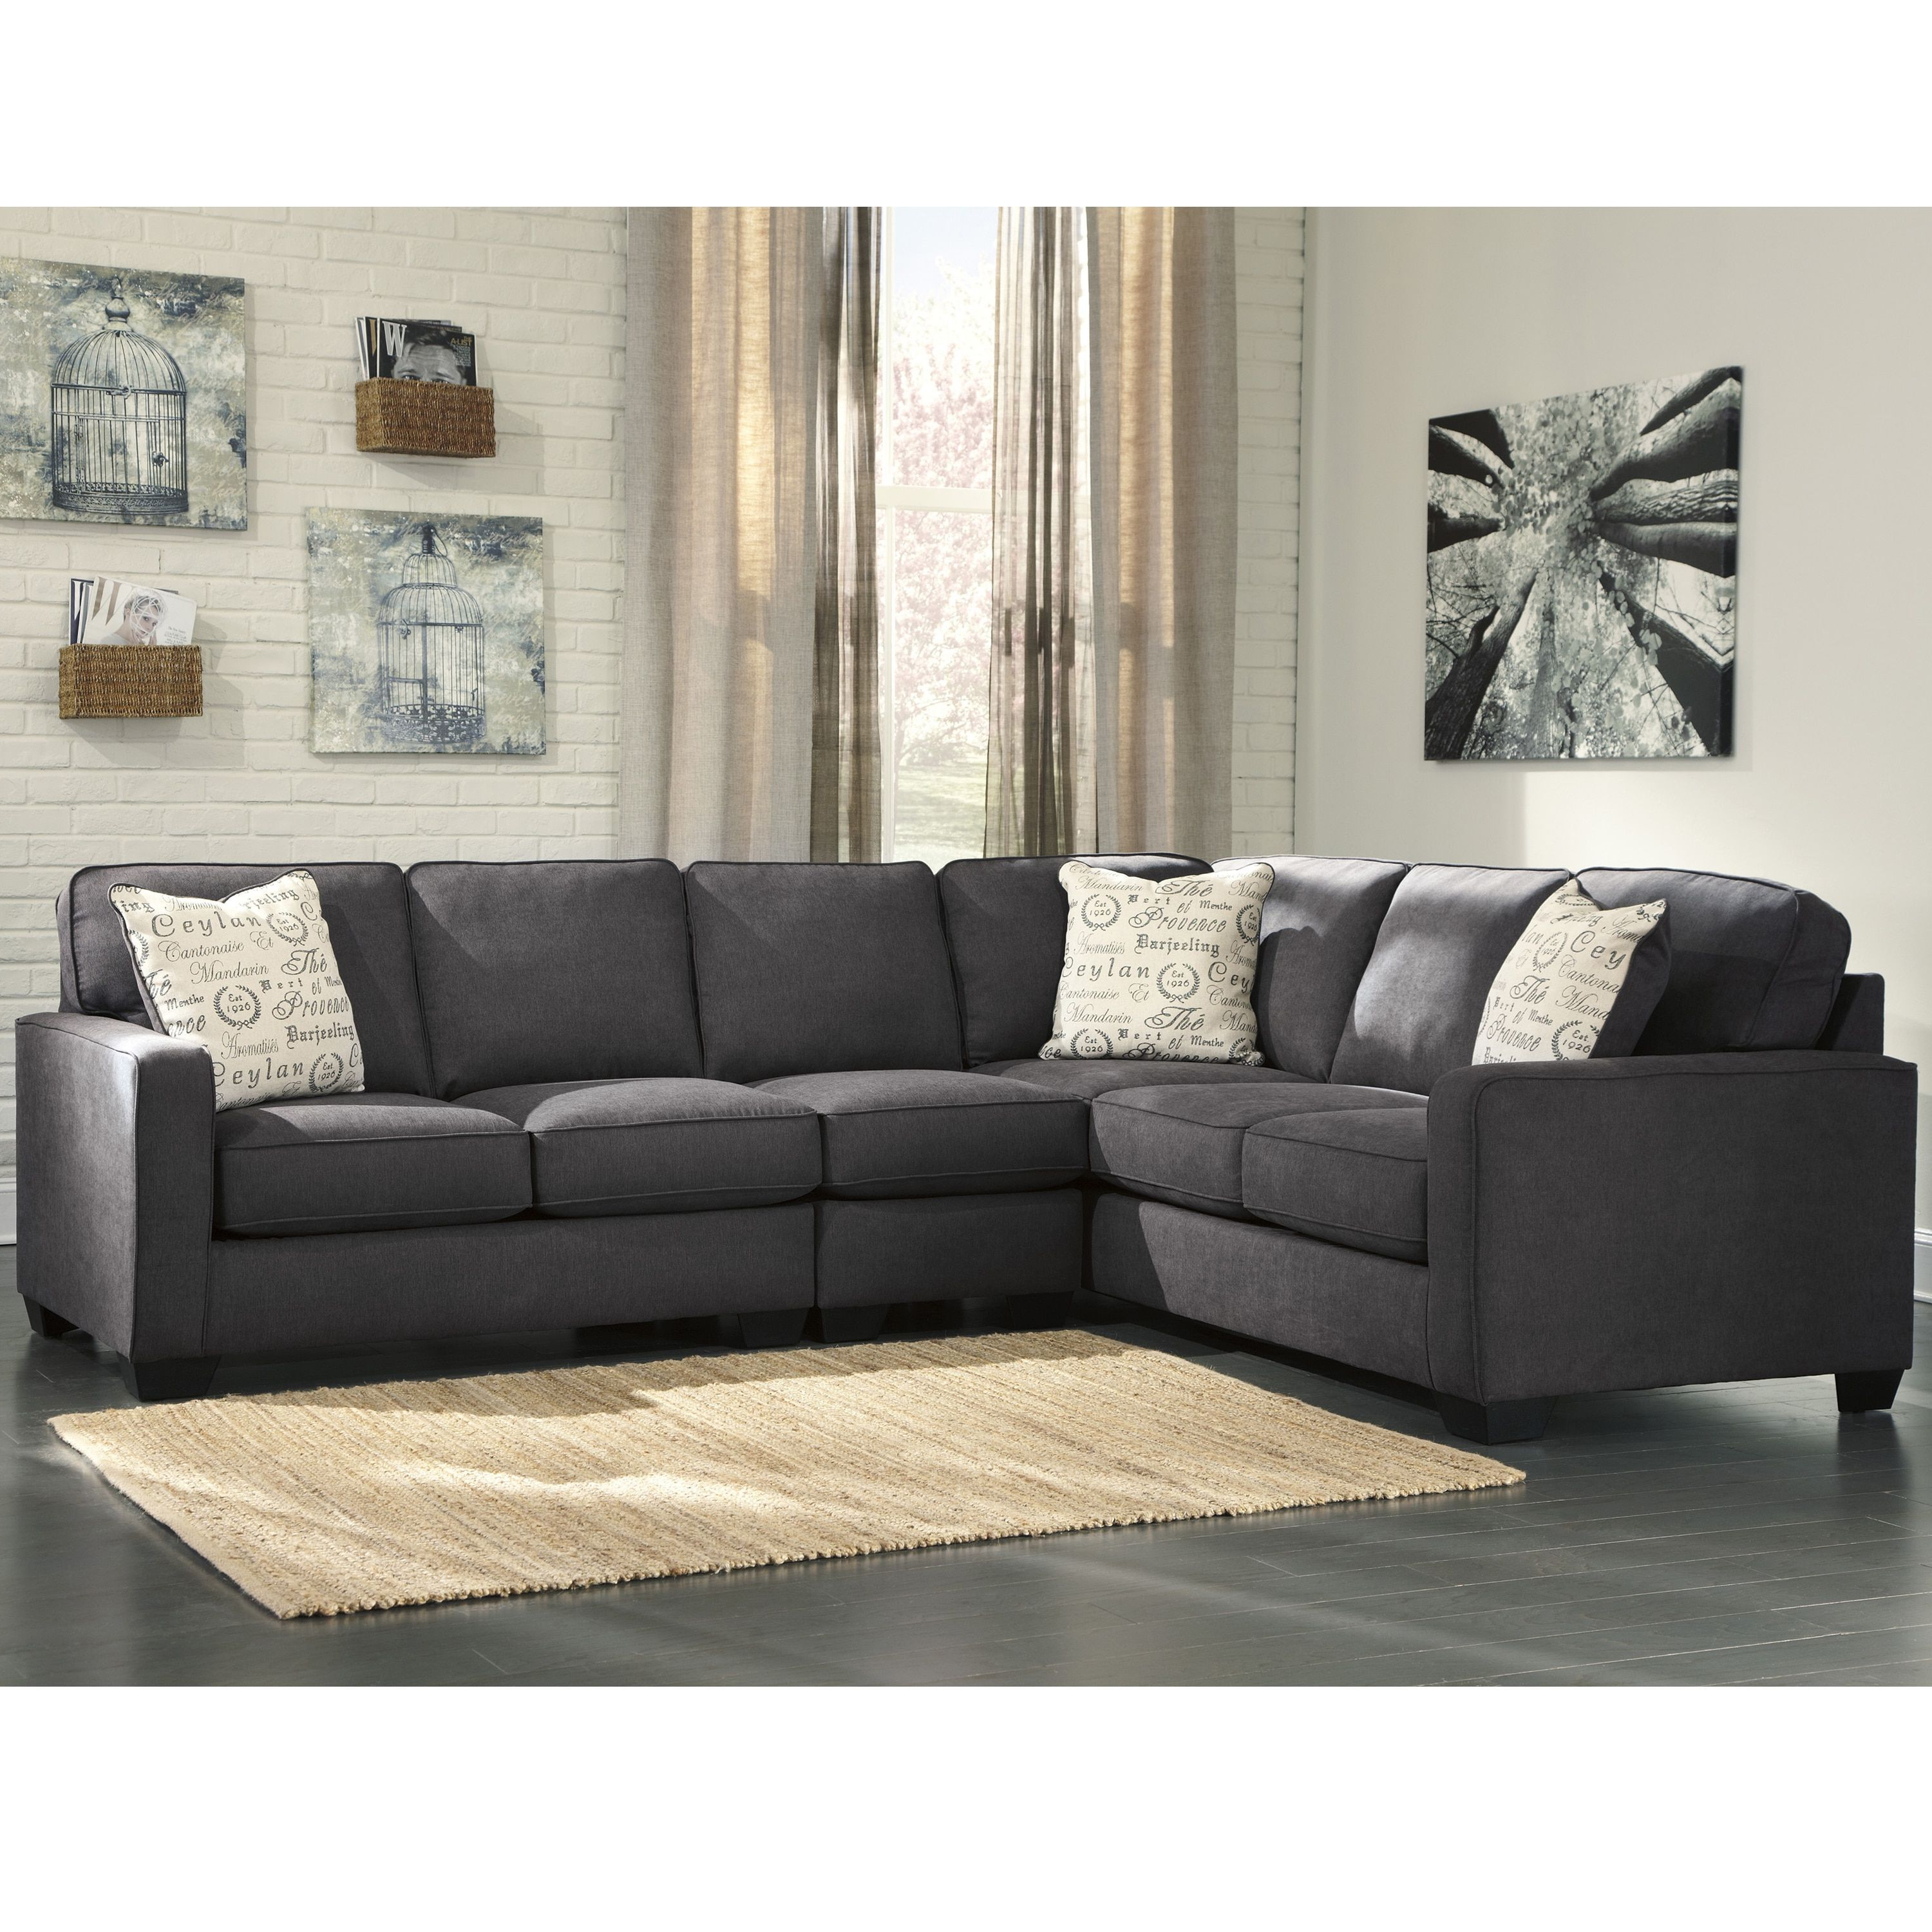 Most Current Signature Designashley Alenya 3 Piece Laf Sofa Sectional In For Marissa Ii 3 Piece Sectionals (View 7 of 20)